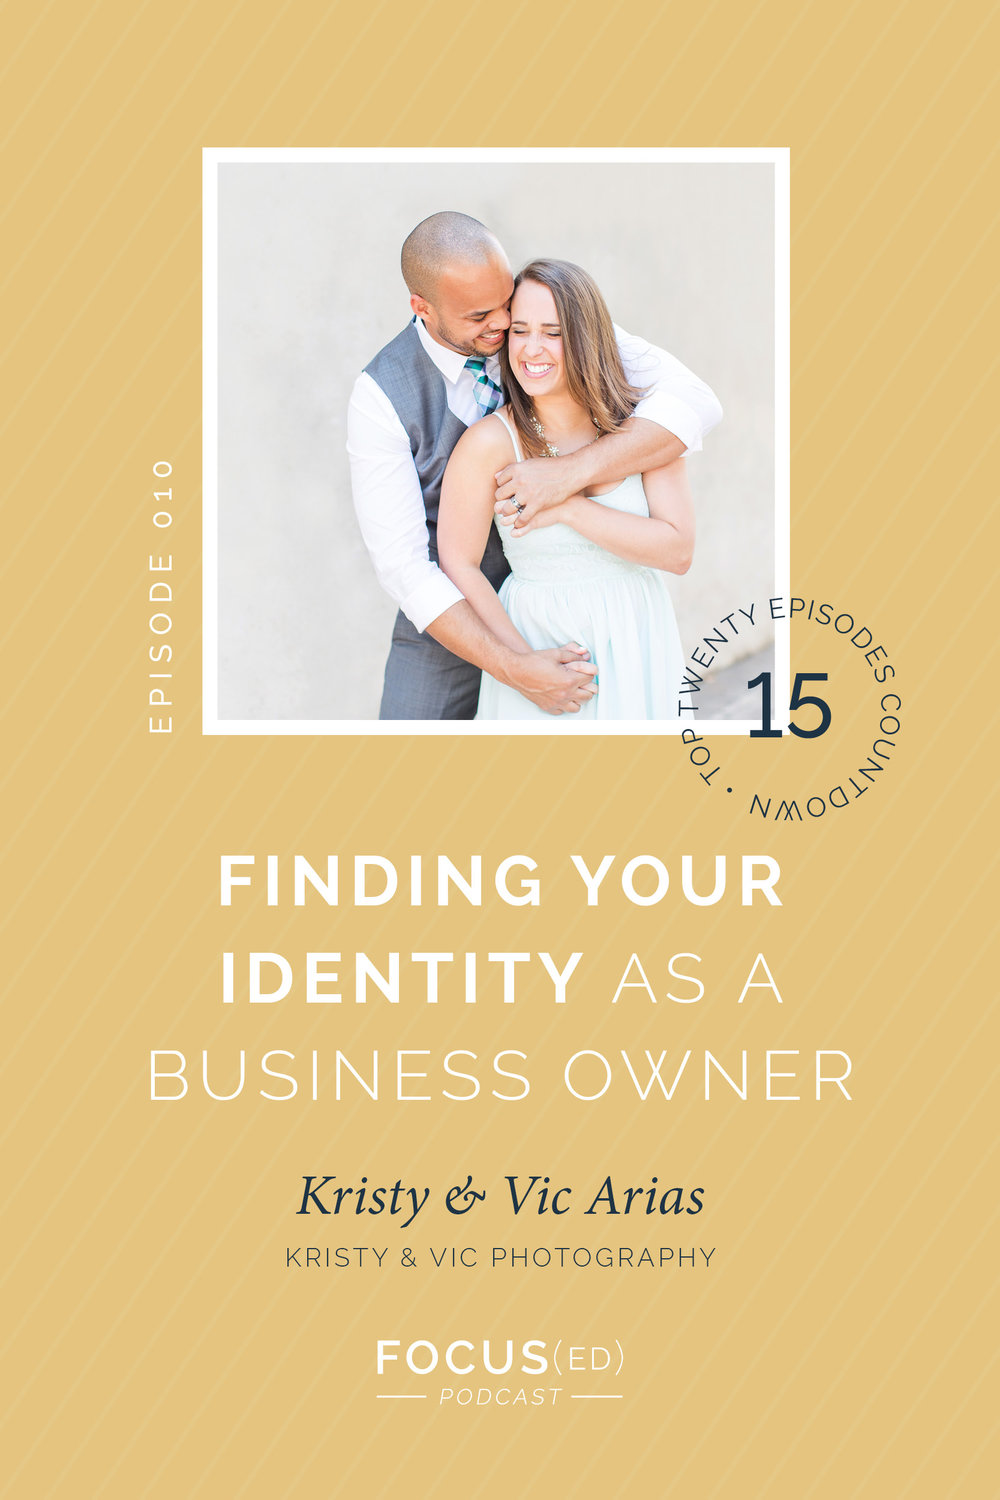 TOP 20: #15 Finding Your Identity in Business with Kristy & Vic | Focus(ed) Podcast